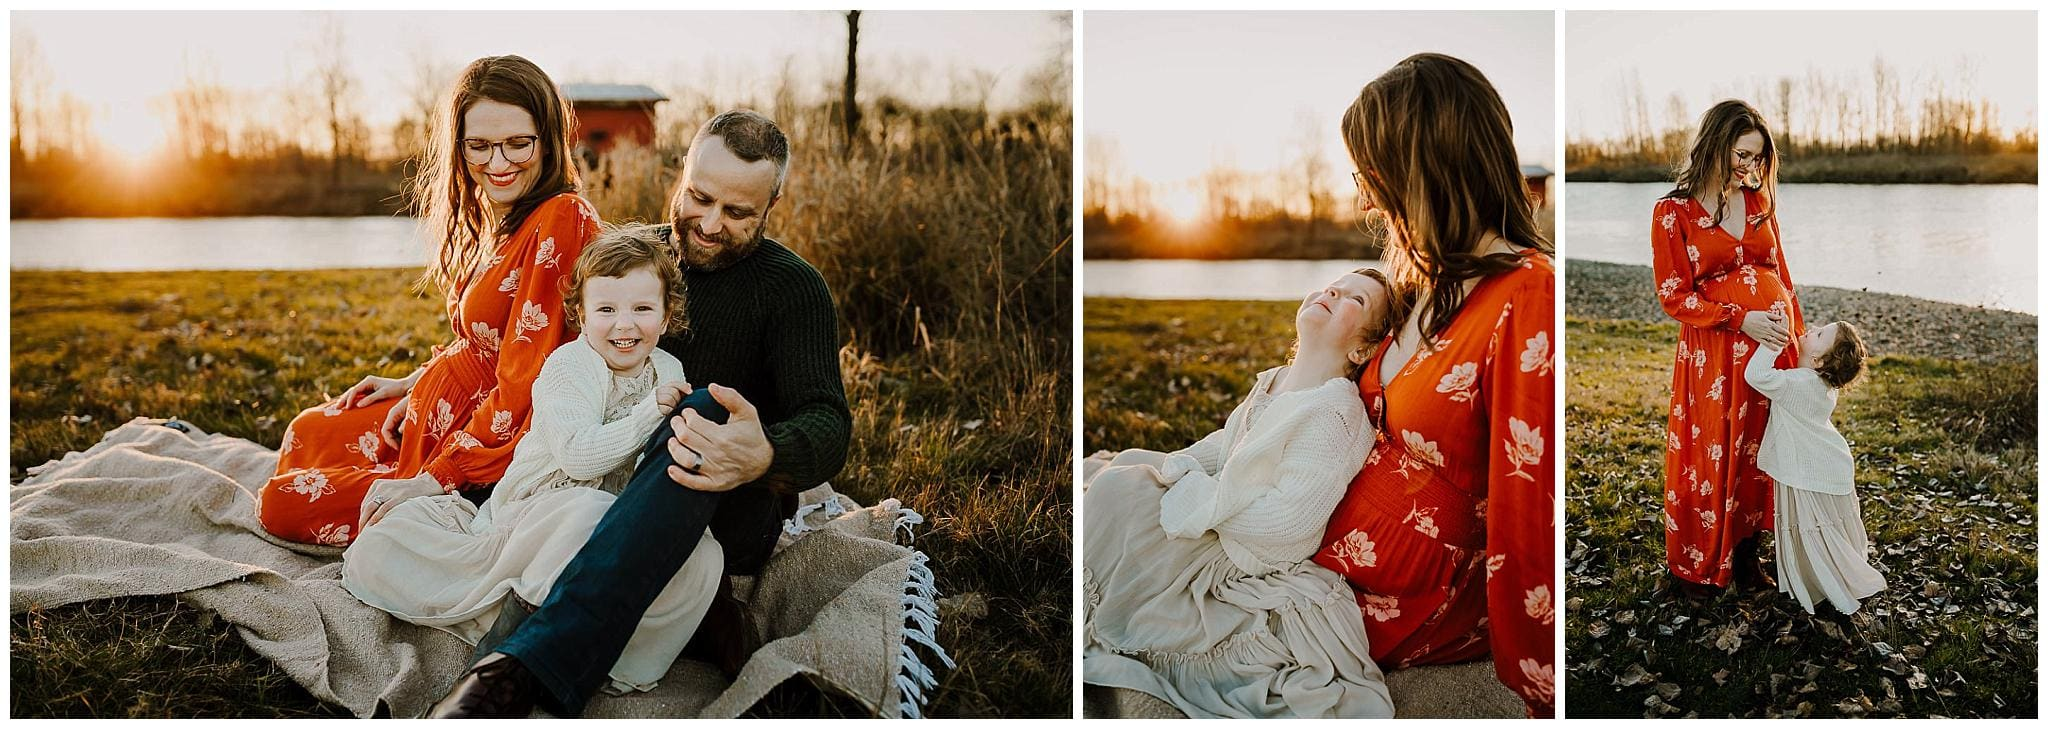 lifestyle maternity photography with a mom in orange dress cuddling her toddler daughter